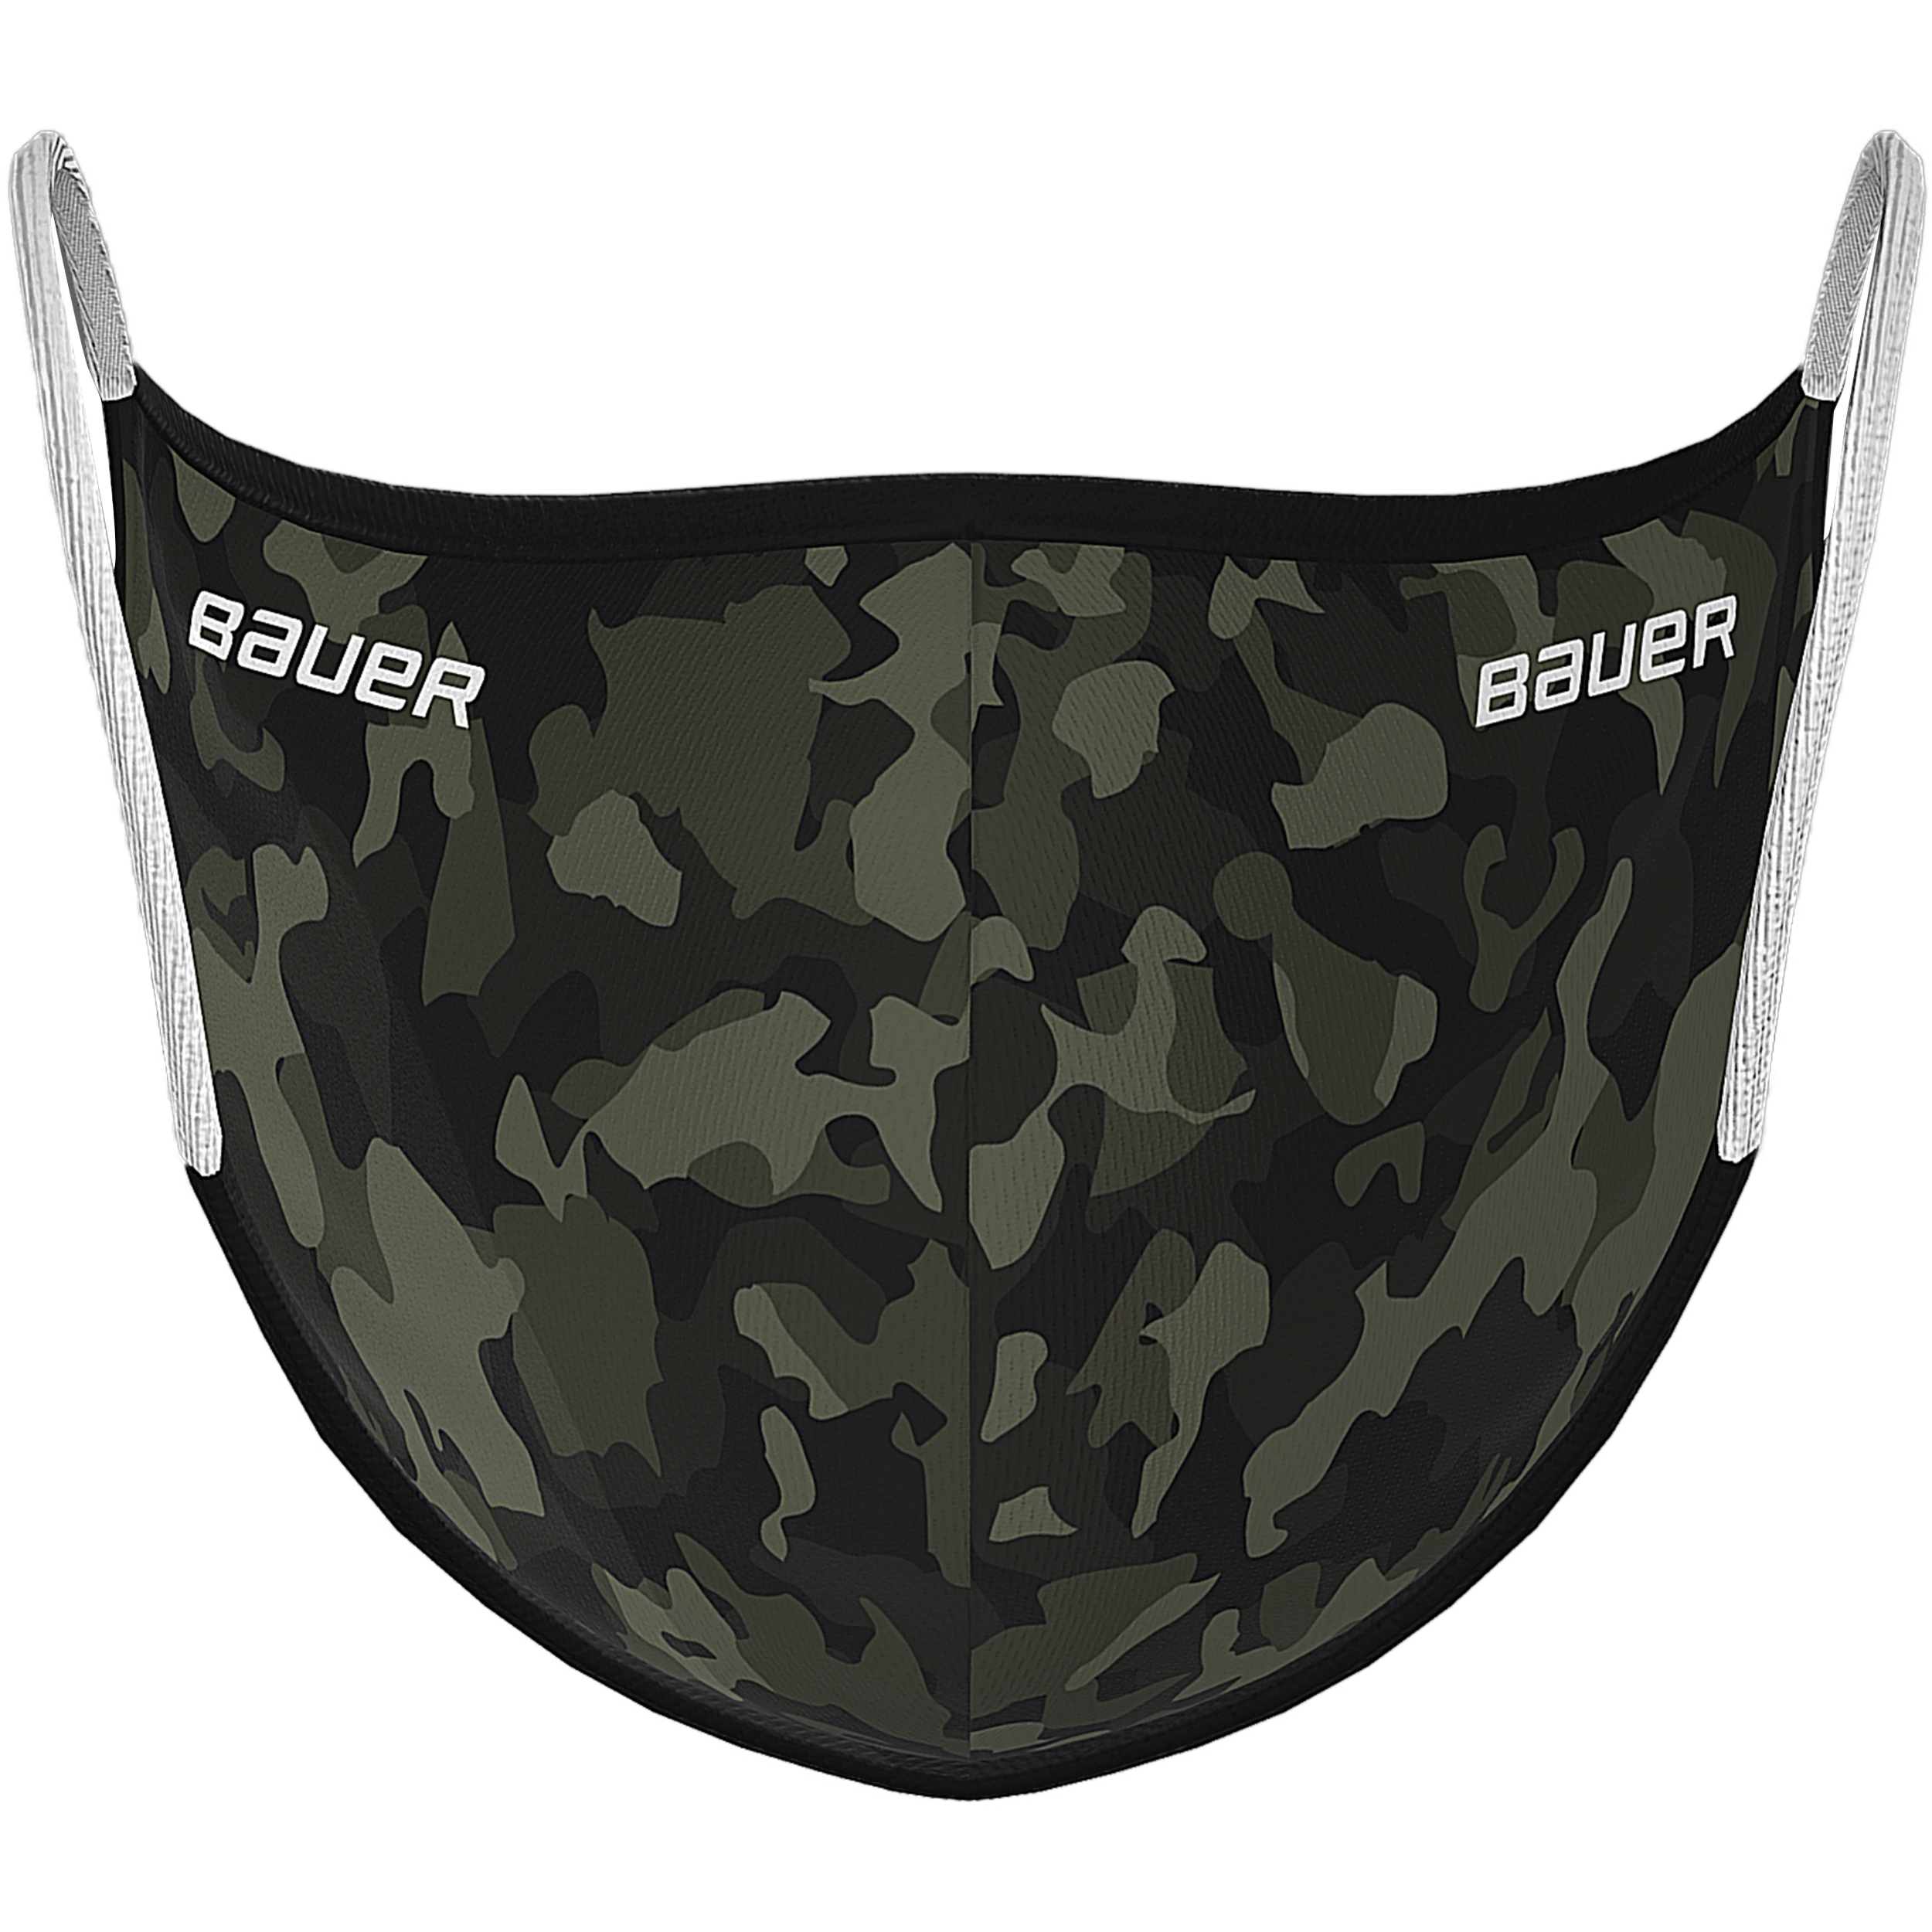 Bauer Reversible Fabric Face Mask Bauer In 2020 Face Mask Hockey Mom Bauer